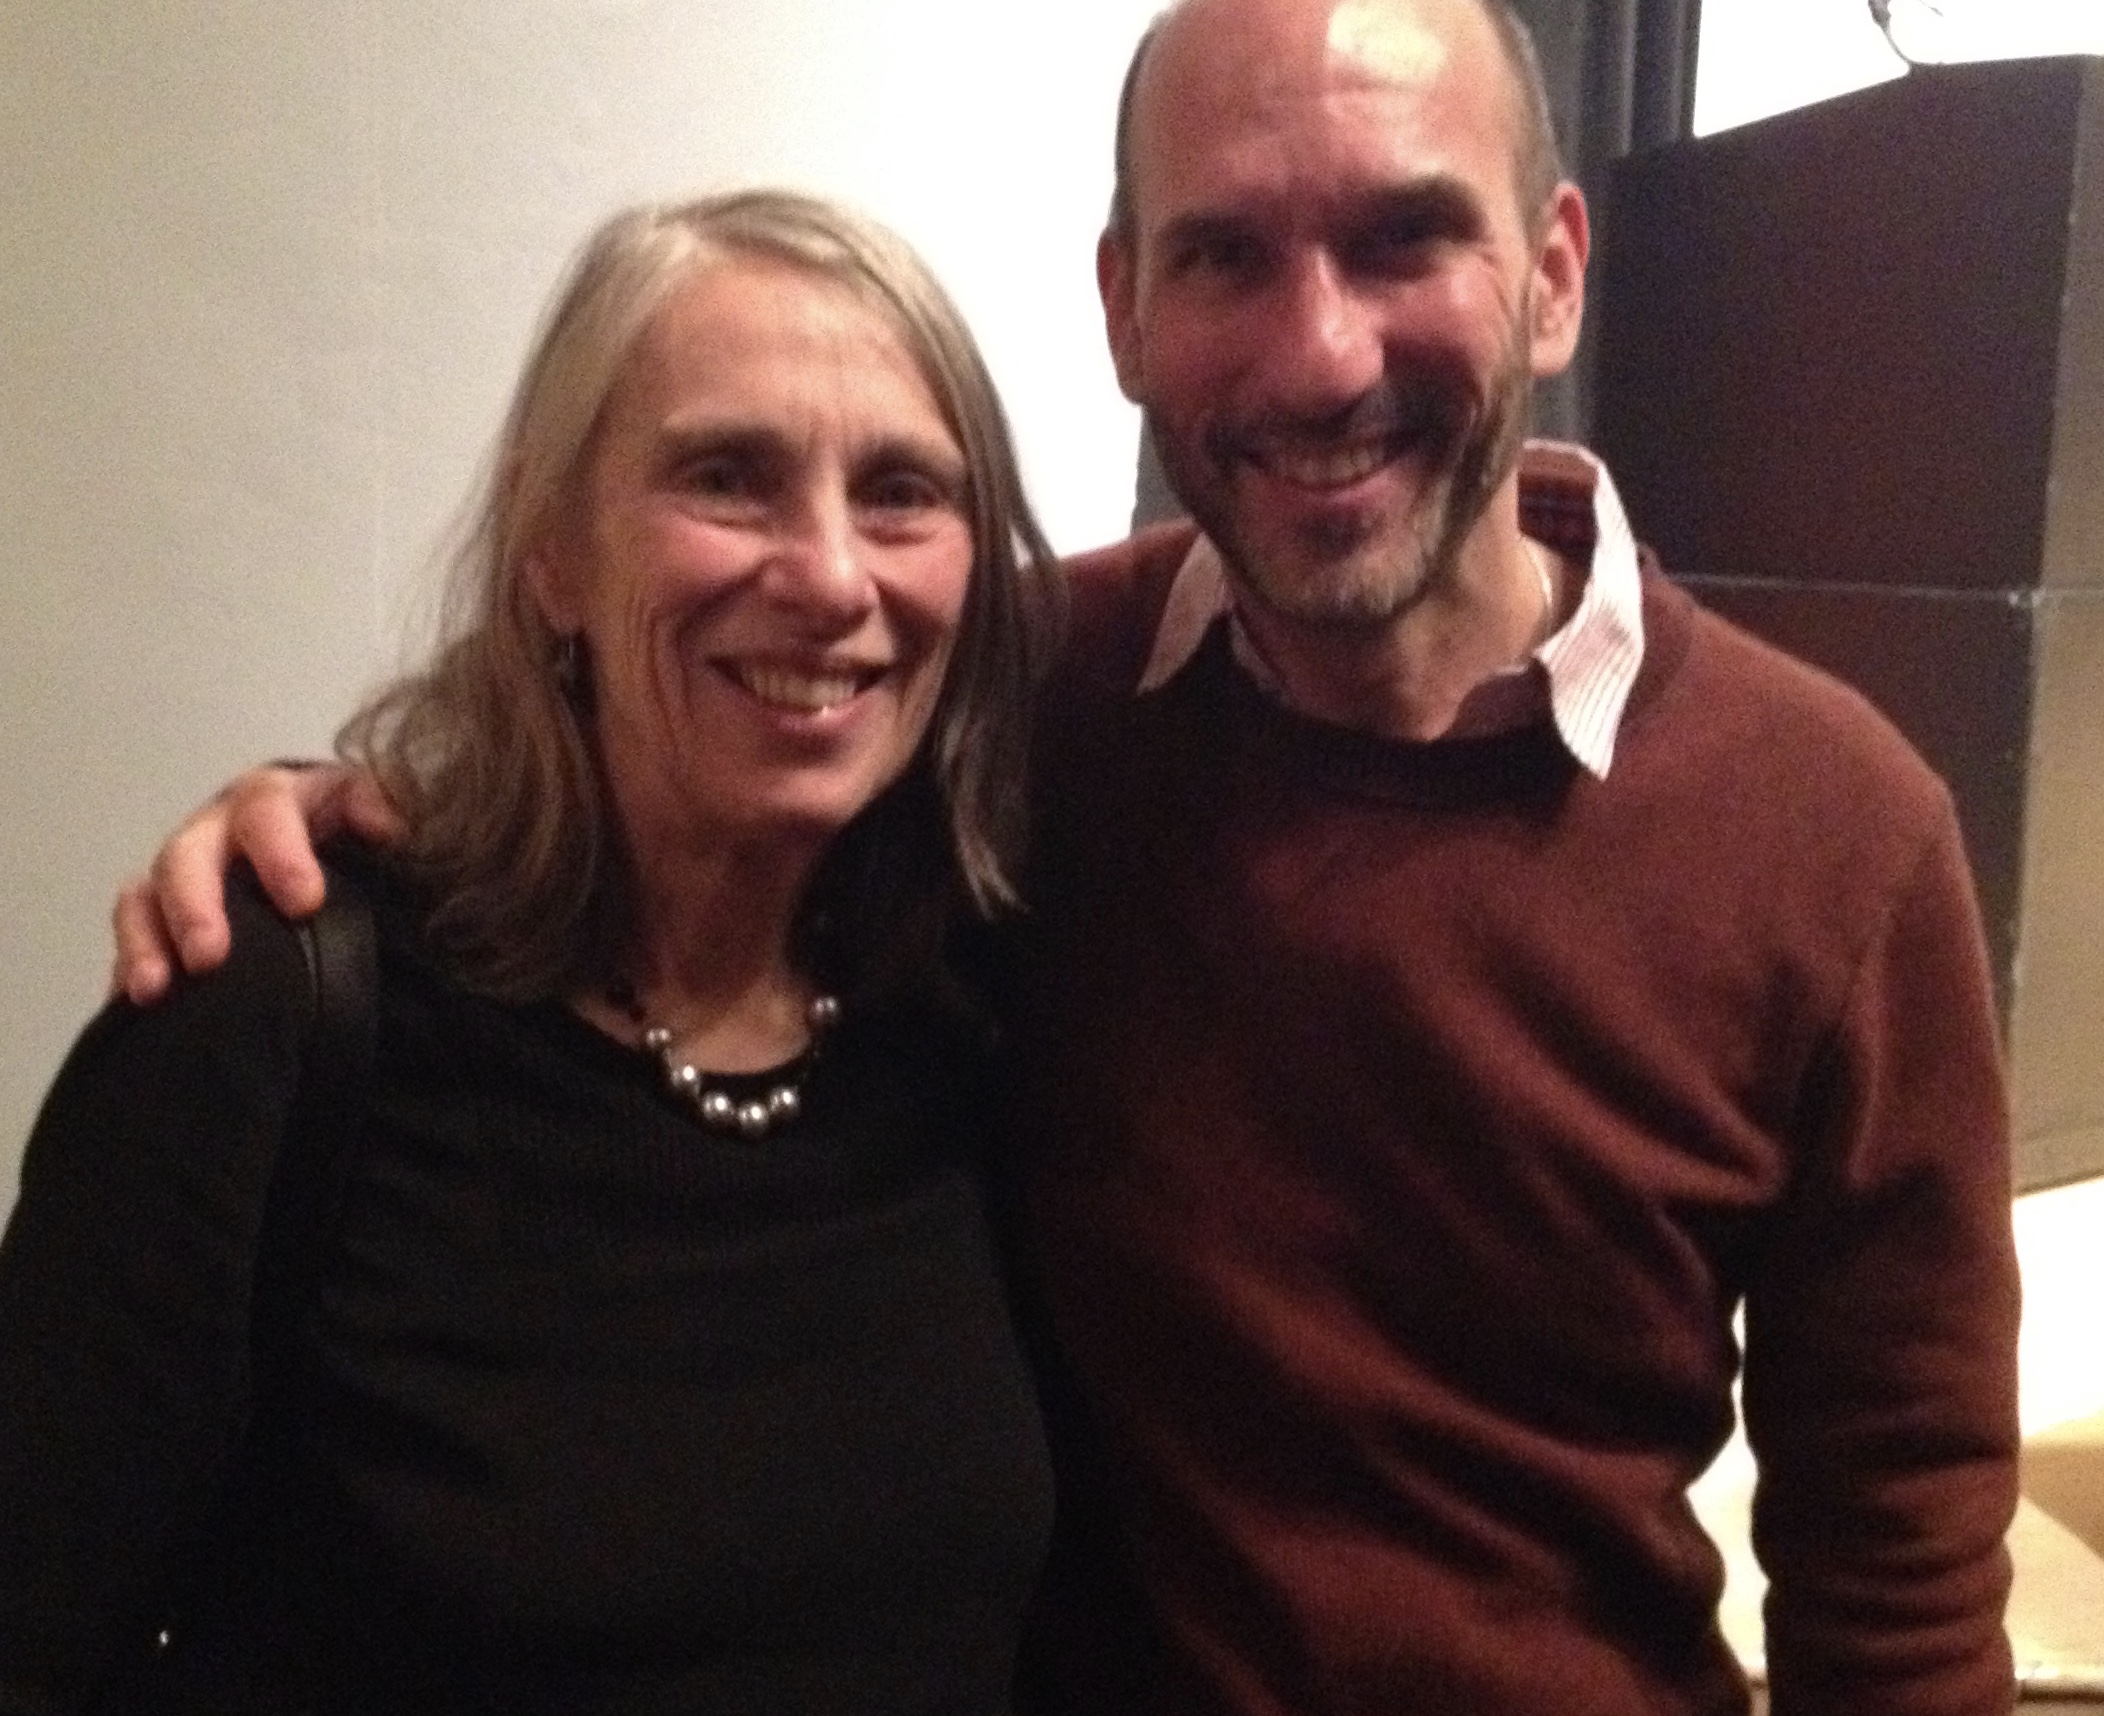 With Joan Larkin, author of Blue Hanuman, My Body: New and Selected Poems, and Cold River.